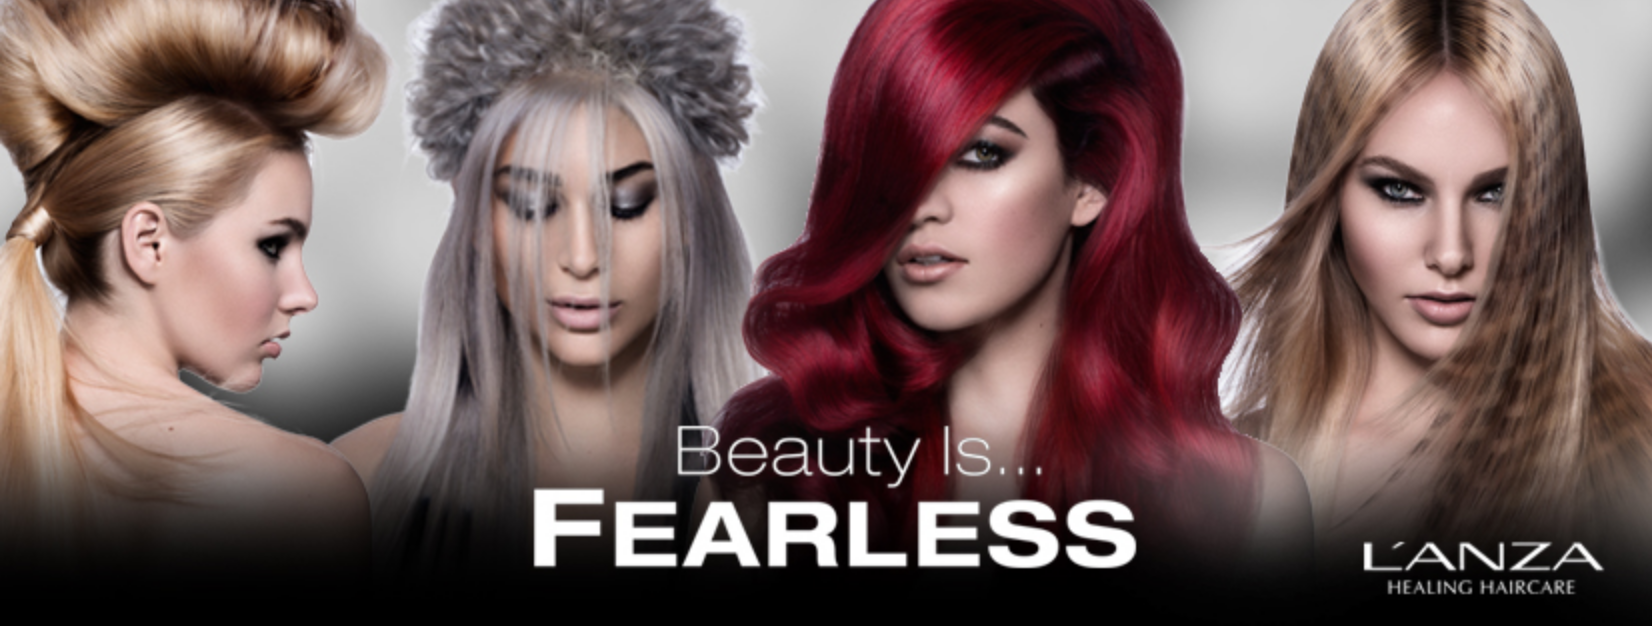 Beauty is Fearless by L'Anza